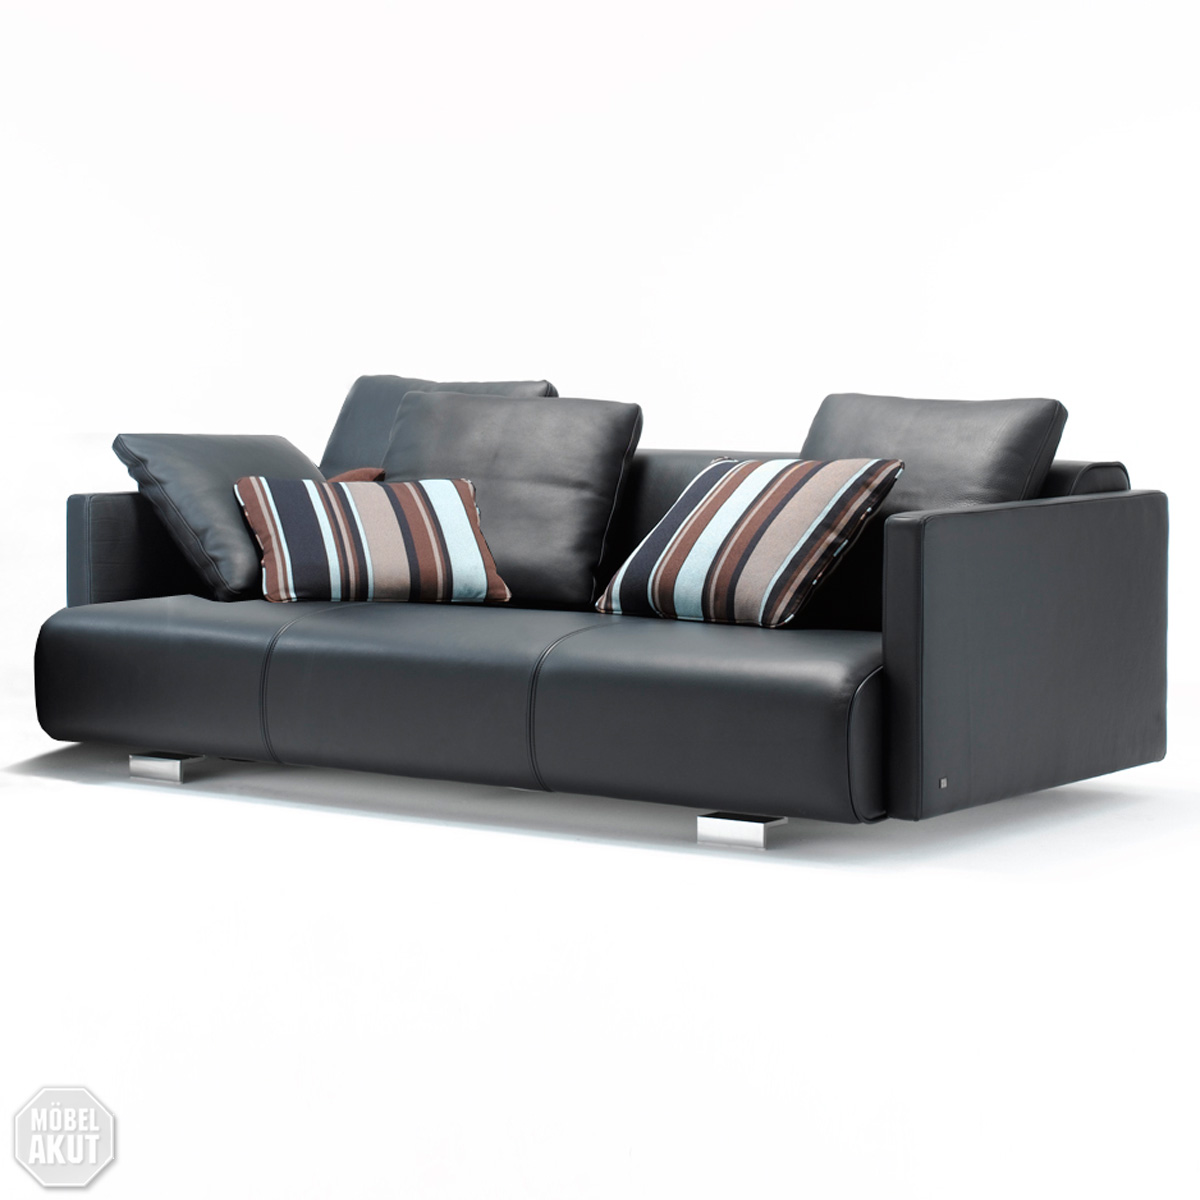 zu original rolf benz sofa sob. Black Bedroom Furniture Sets. Home Design Ideas